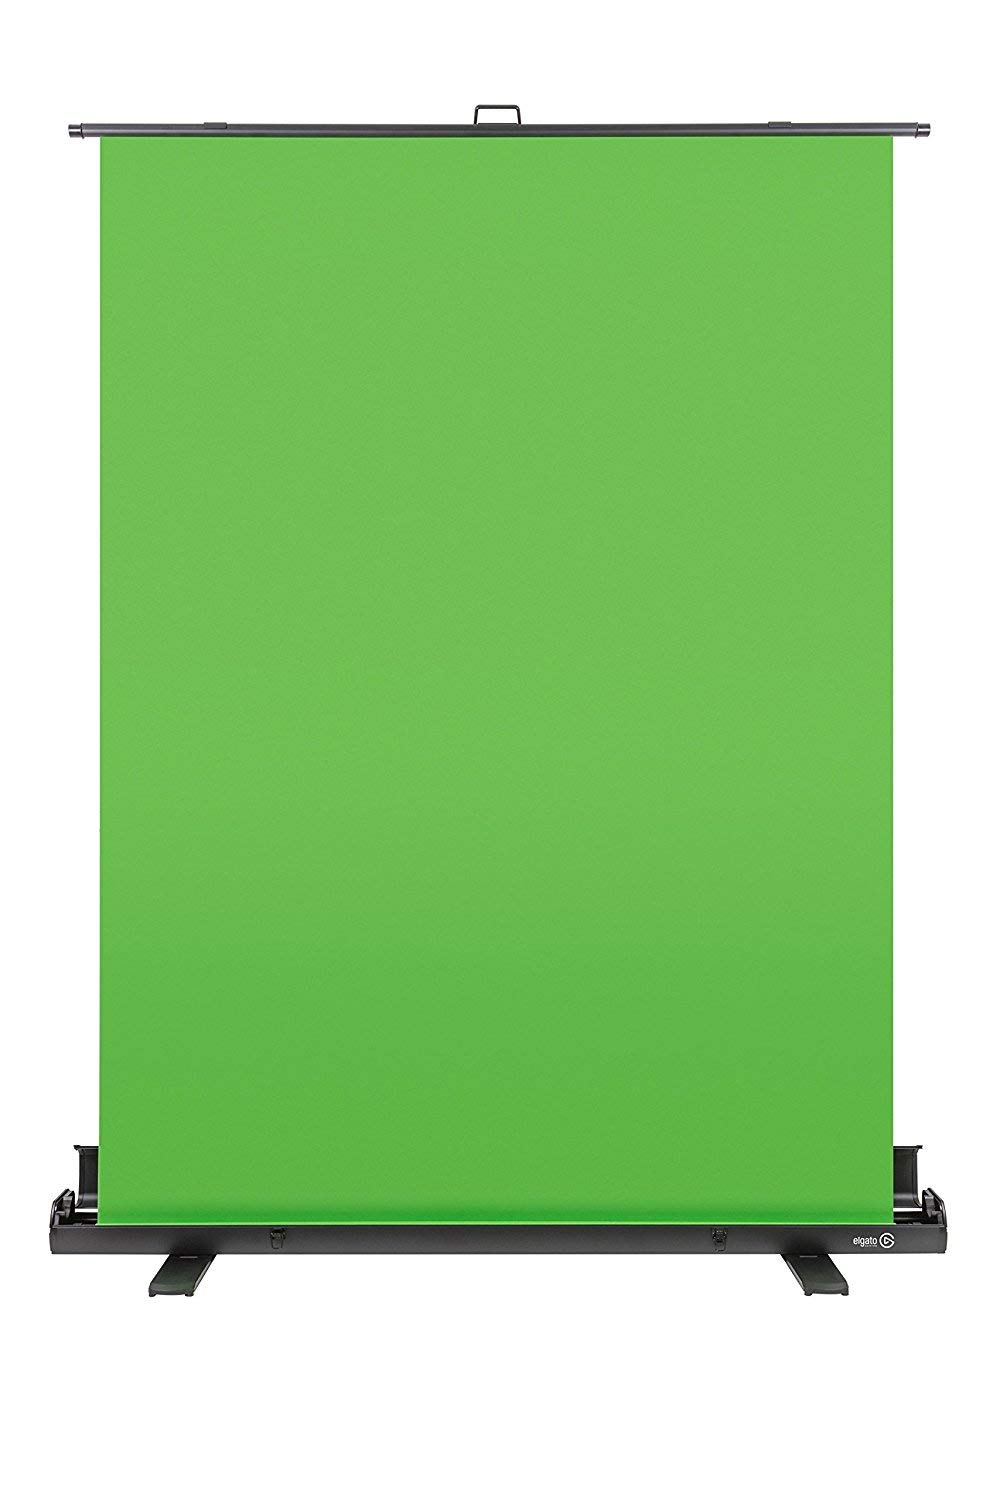 Elgato Green Screen — Collapsible chroma key panel for background